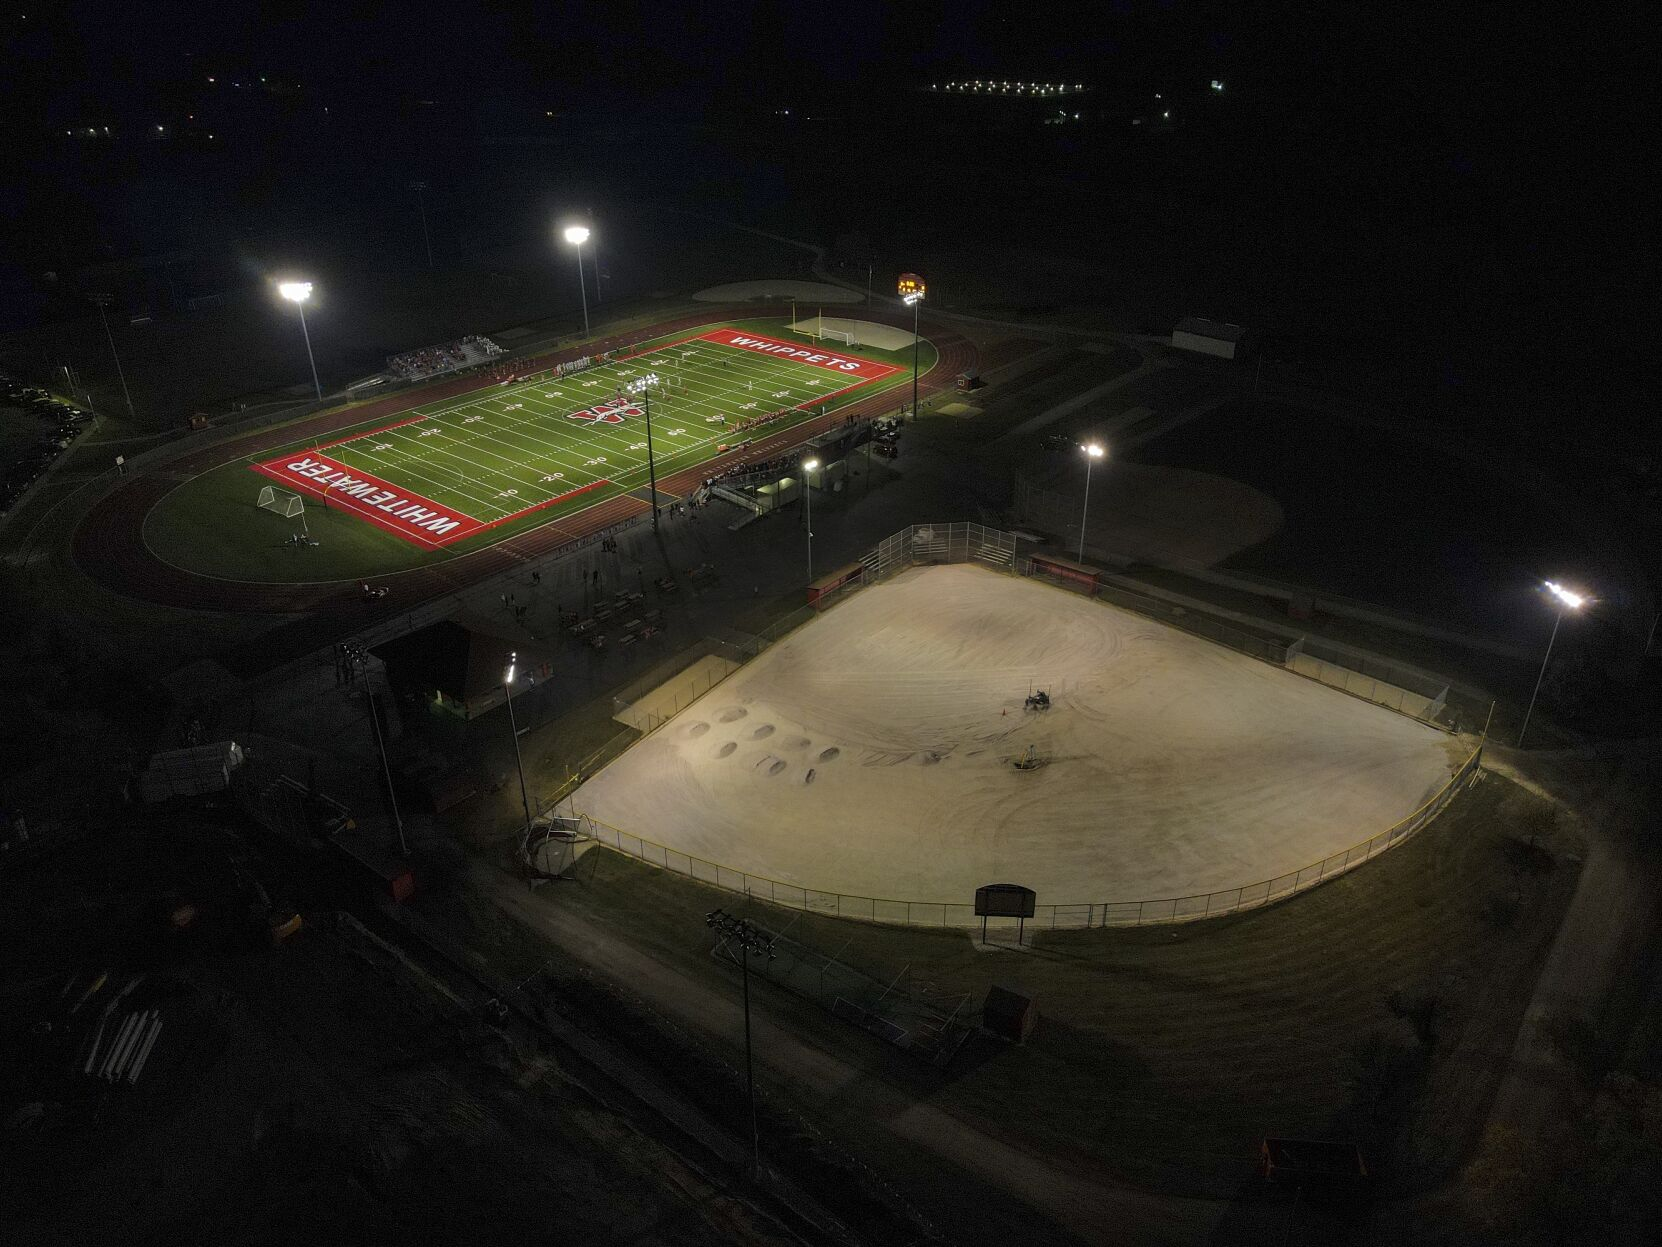 <p>A football field, top, and baseball field under construction are lit up at Whitewater High School Friday, Oct. 1, 2021, in Whitewater, Wis.</p>